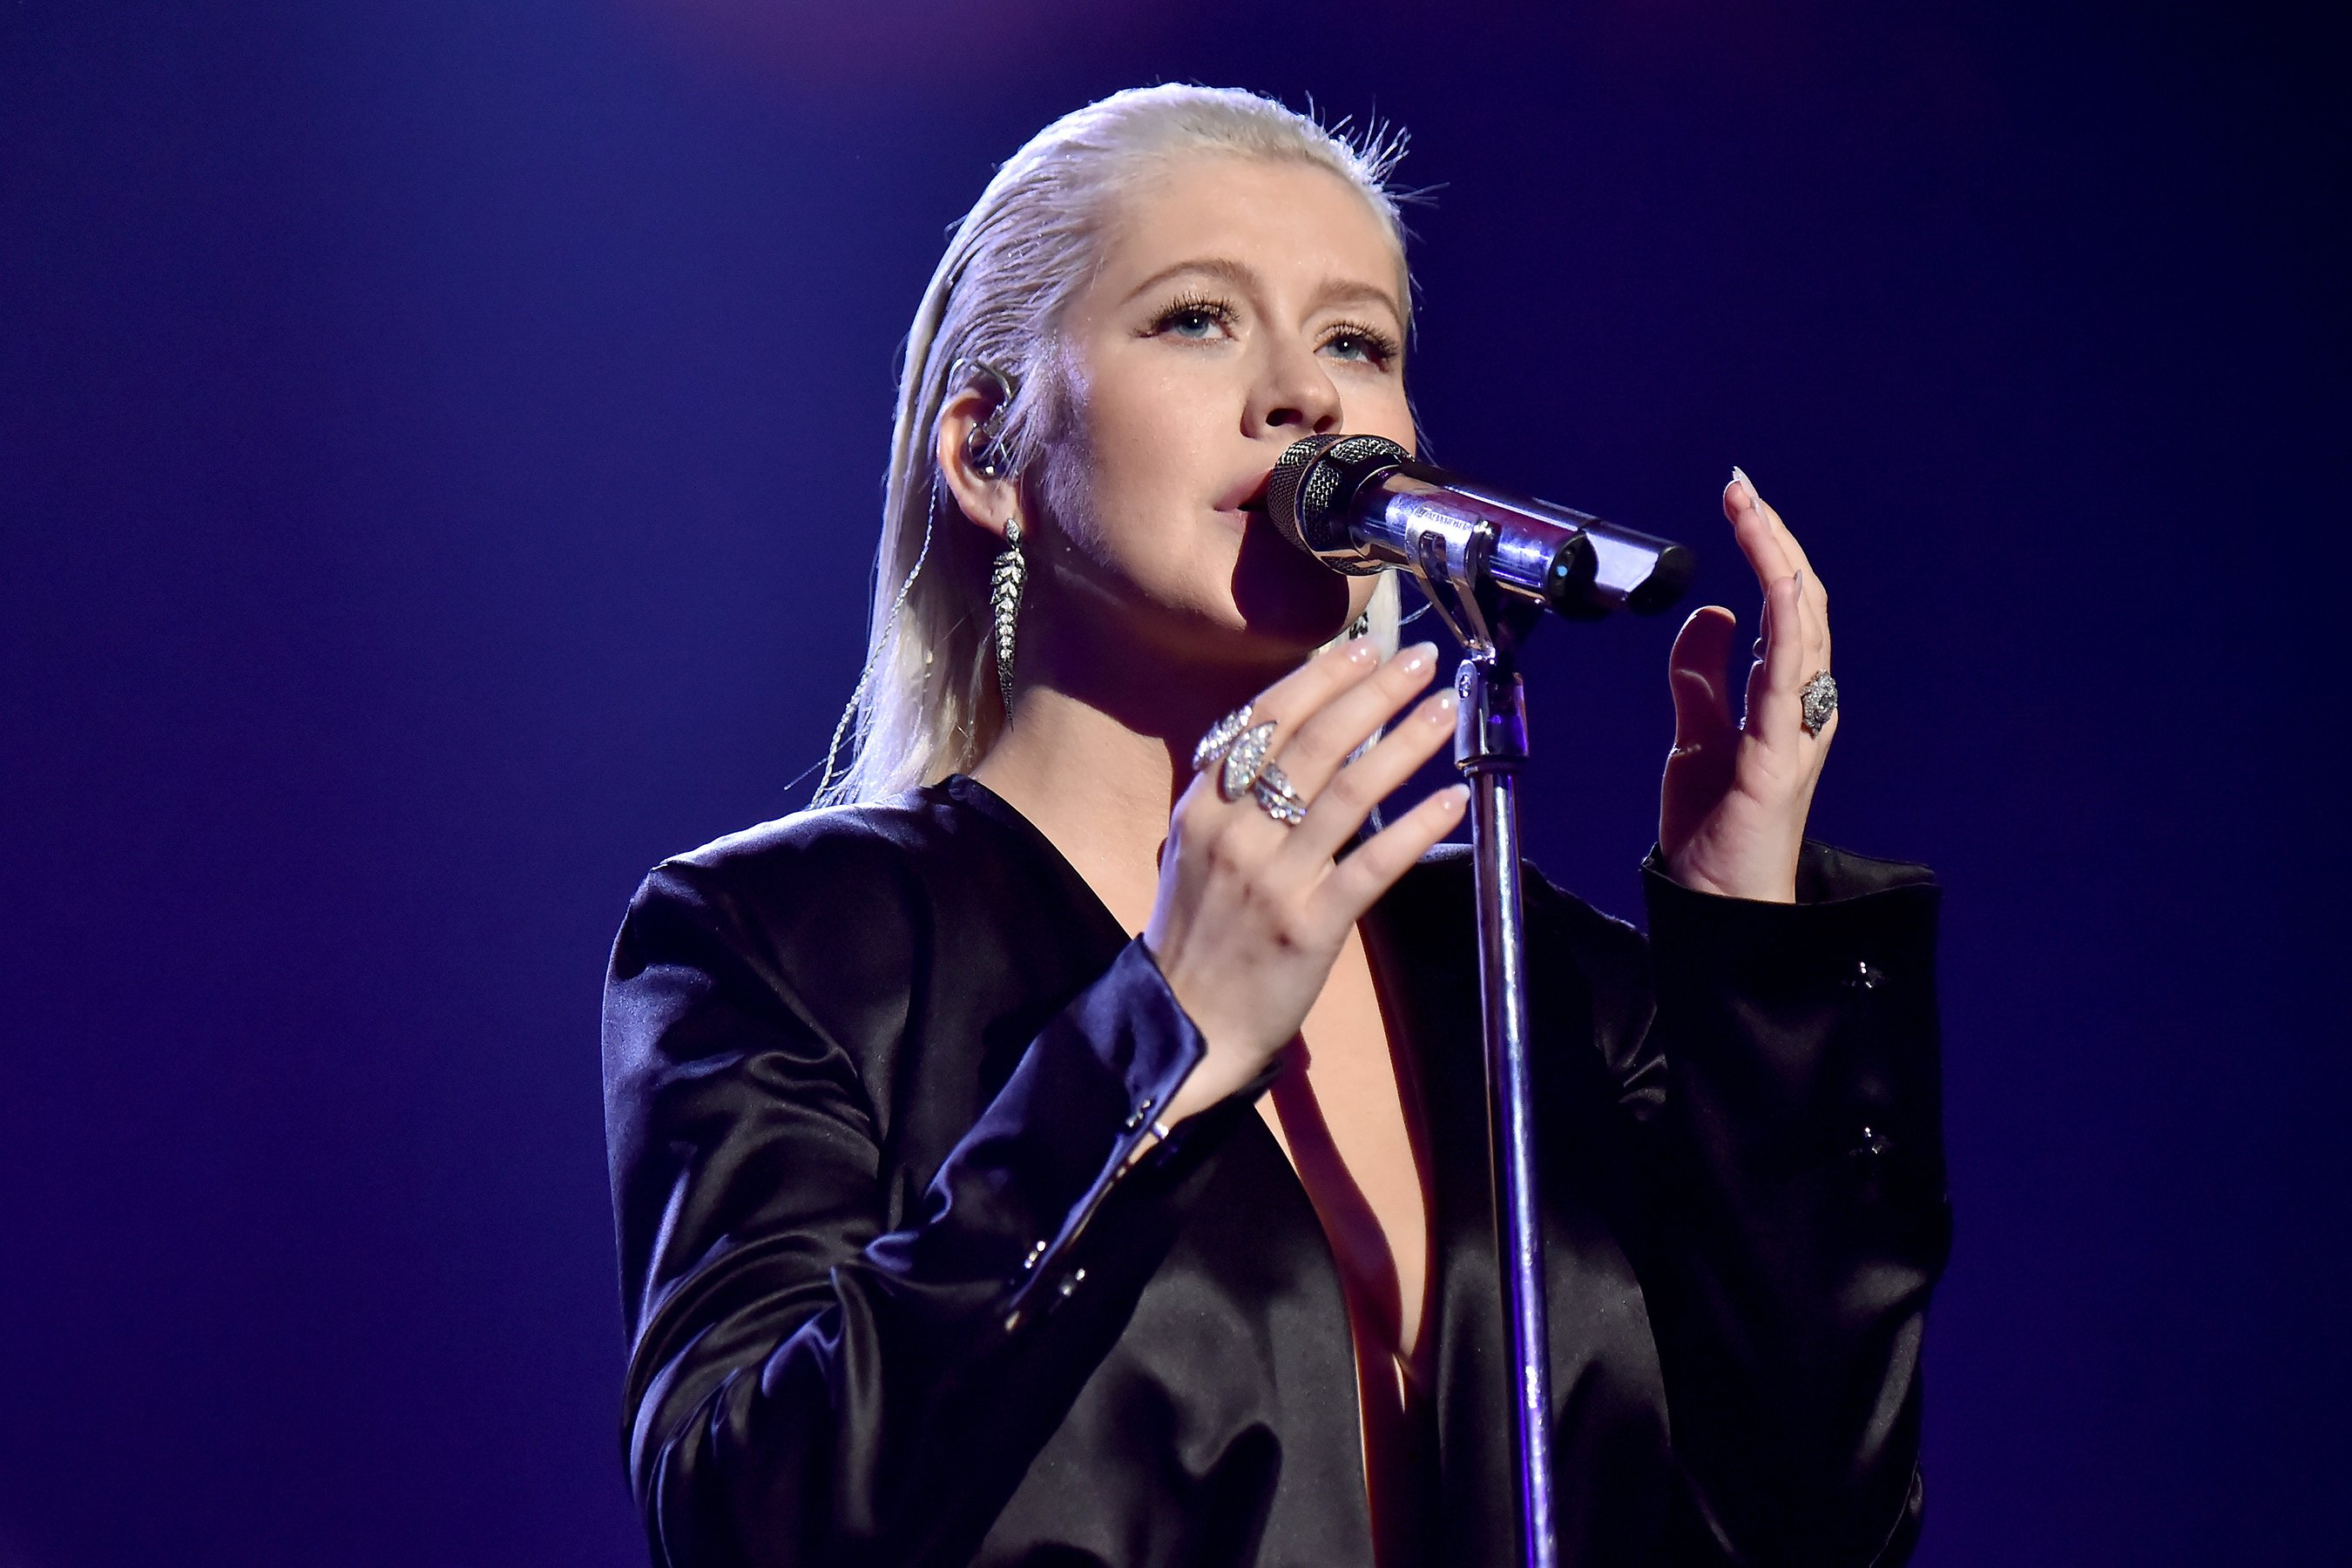 Christina Aguilera promises new album after 5 years:'It's coming'